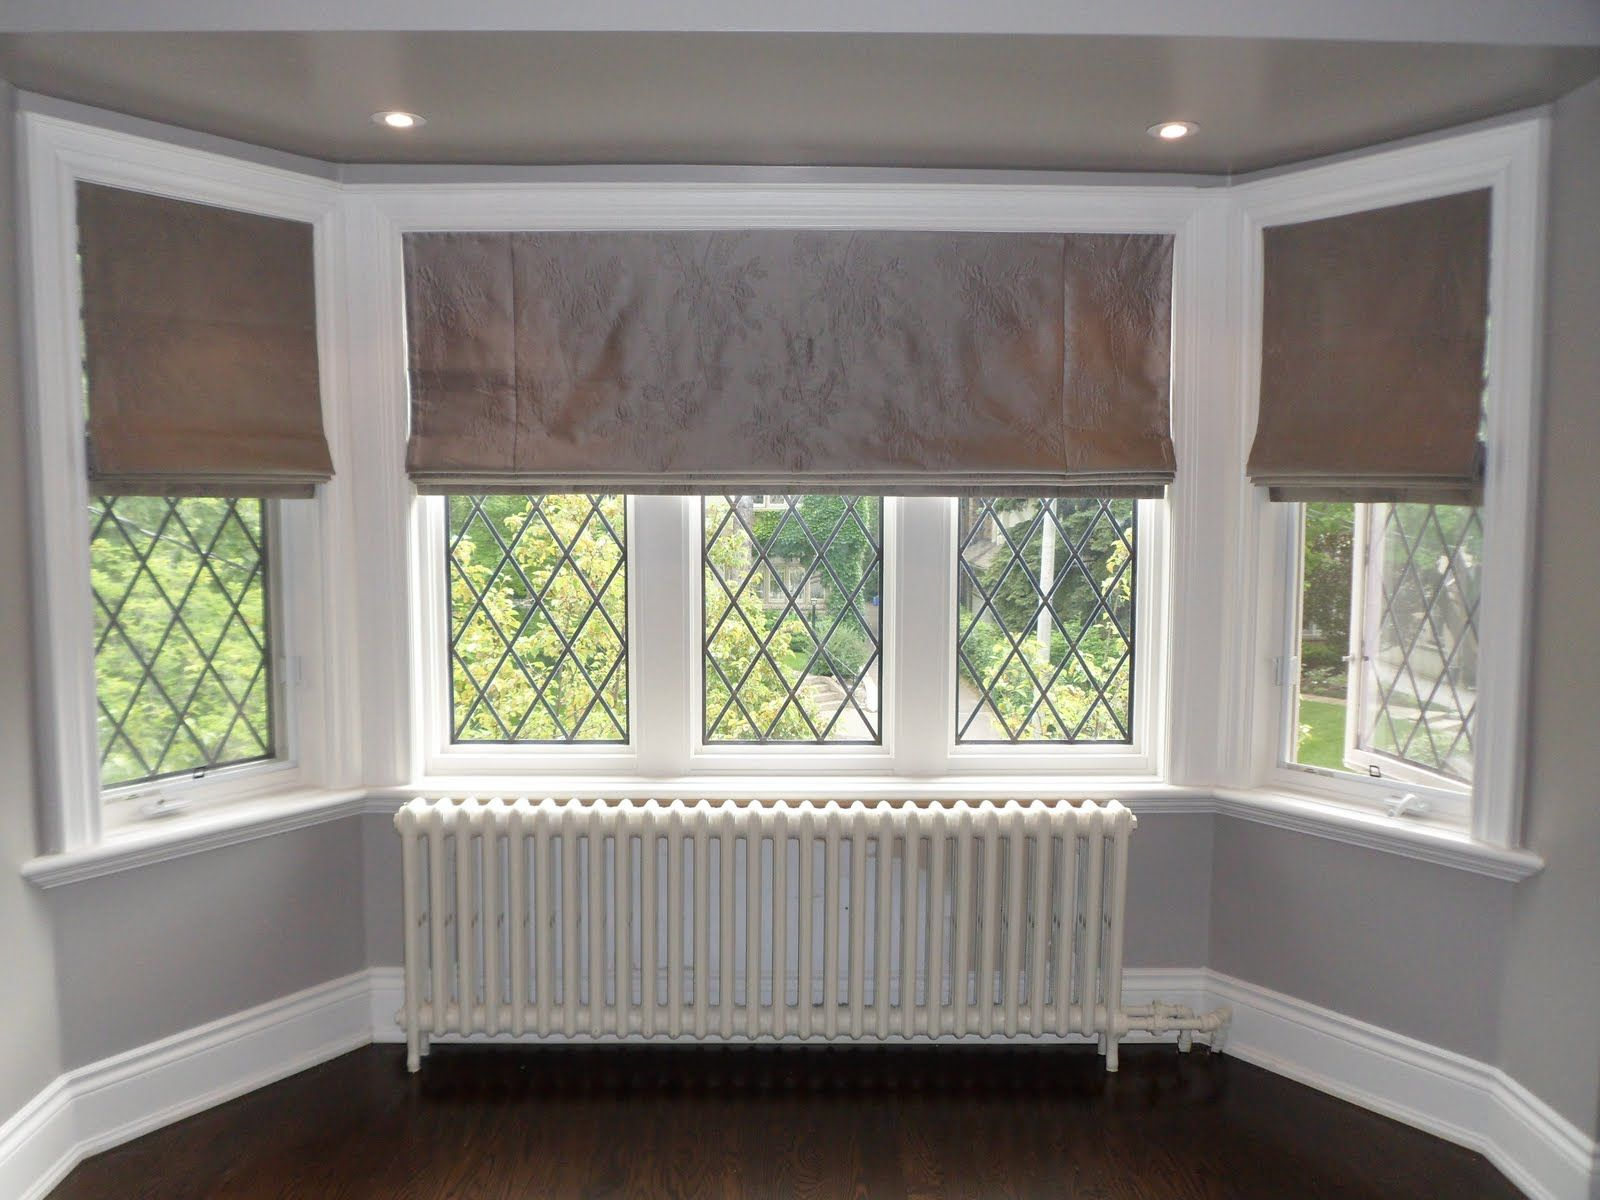 Cottage Style Window Coverings Roman Blinds Allow The